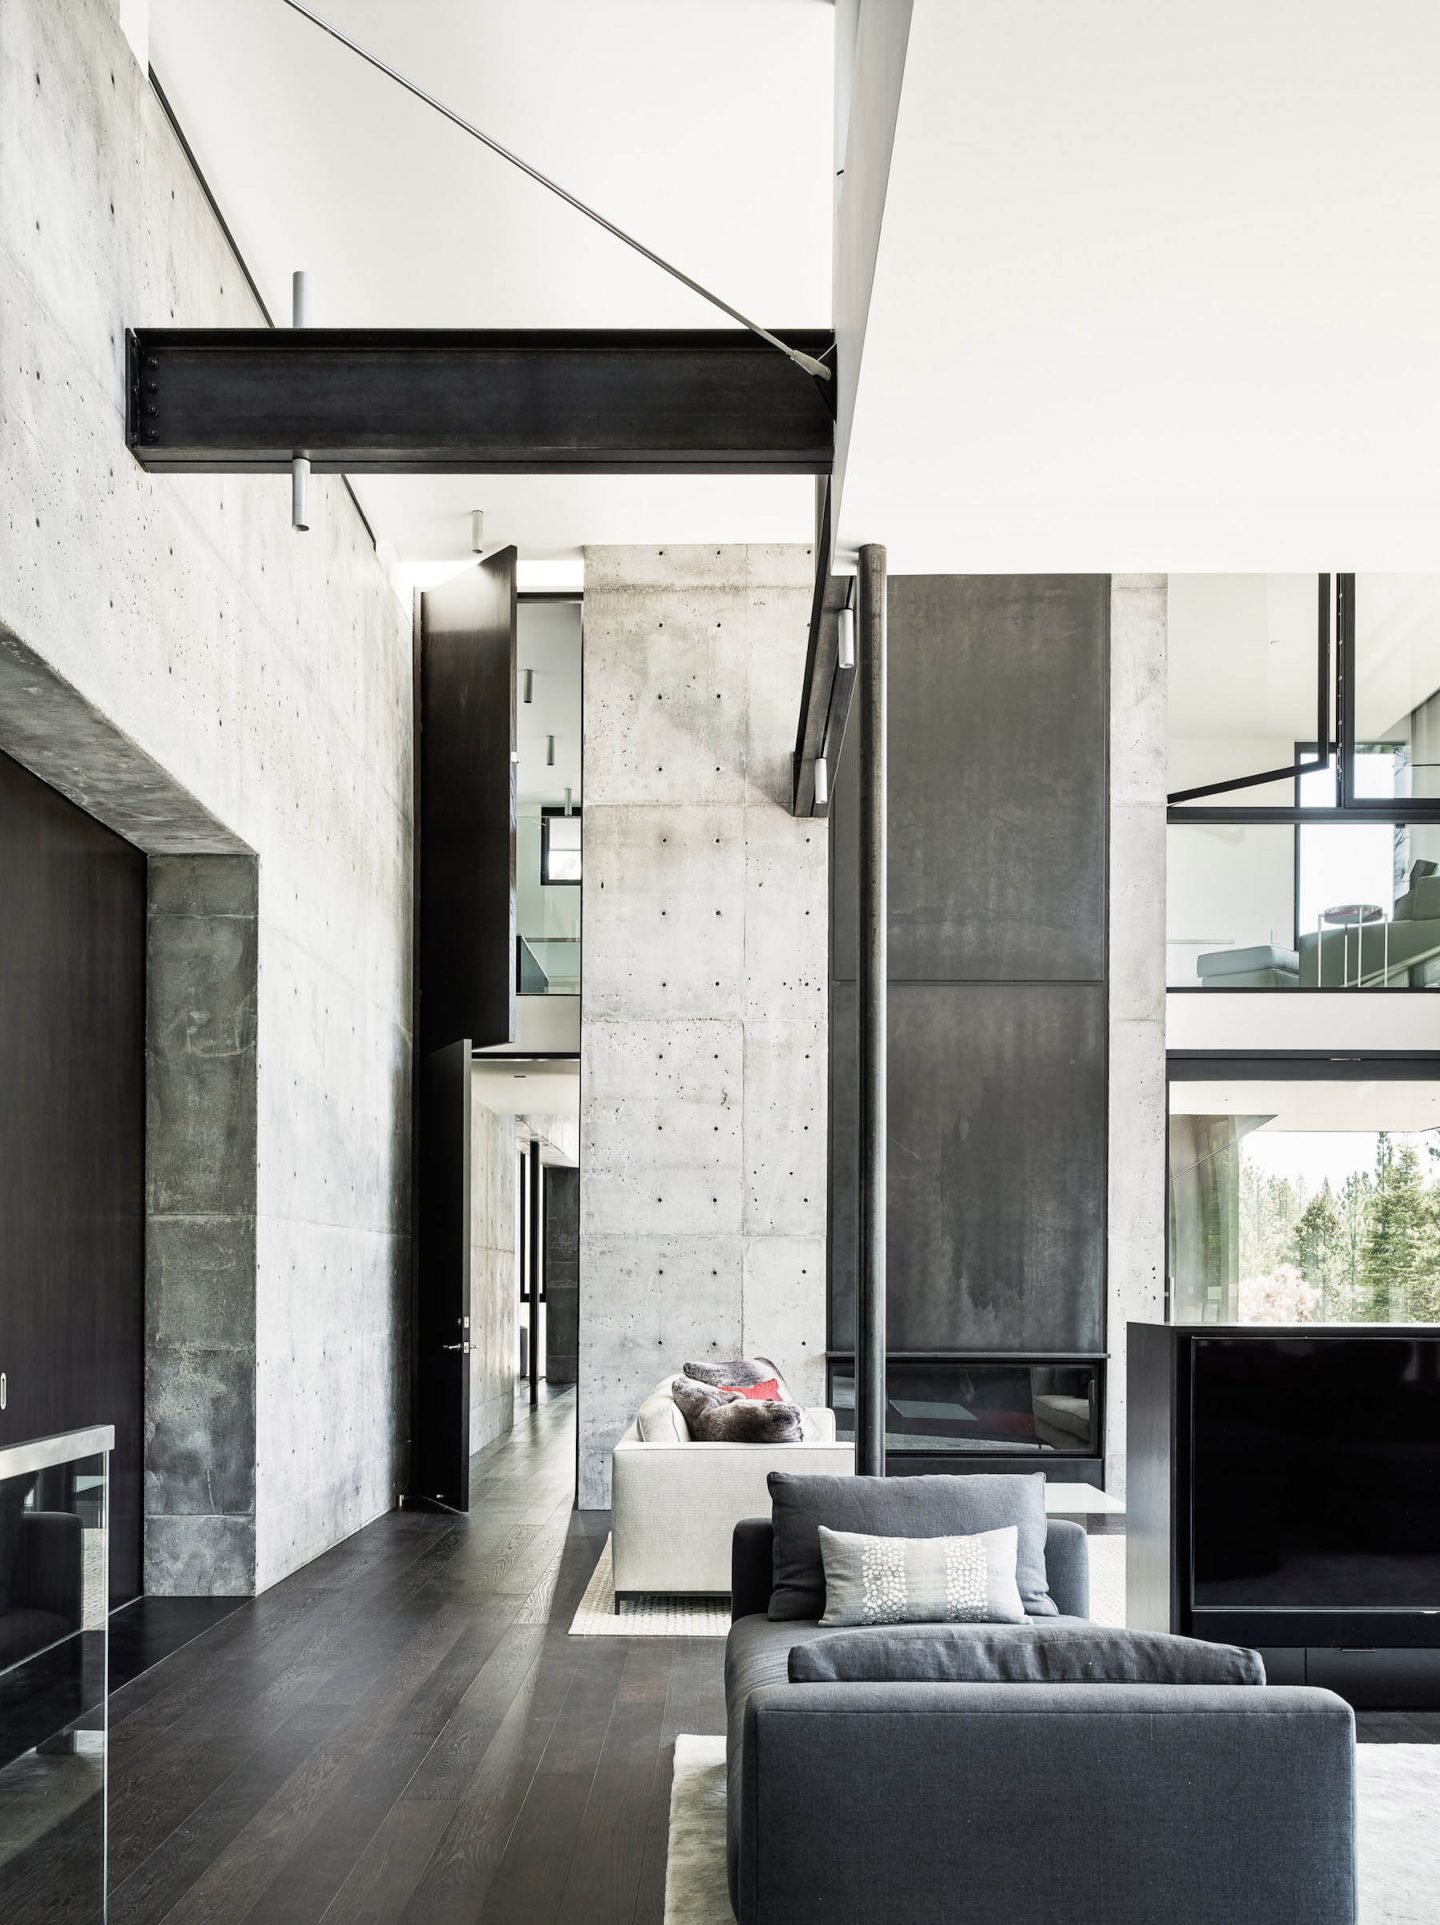 iGNANT-Architecture-Faulkner-Architects-Creek-House-09